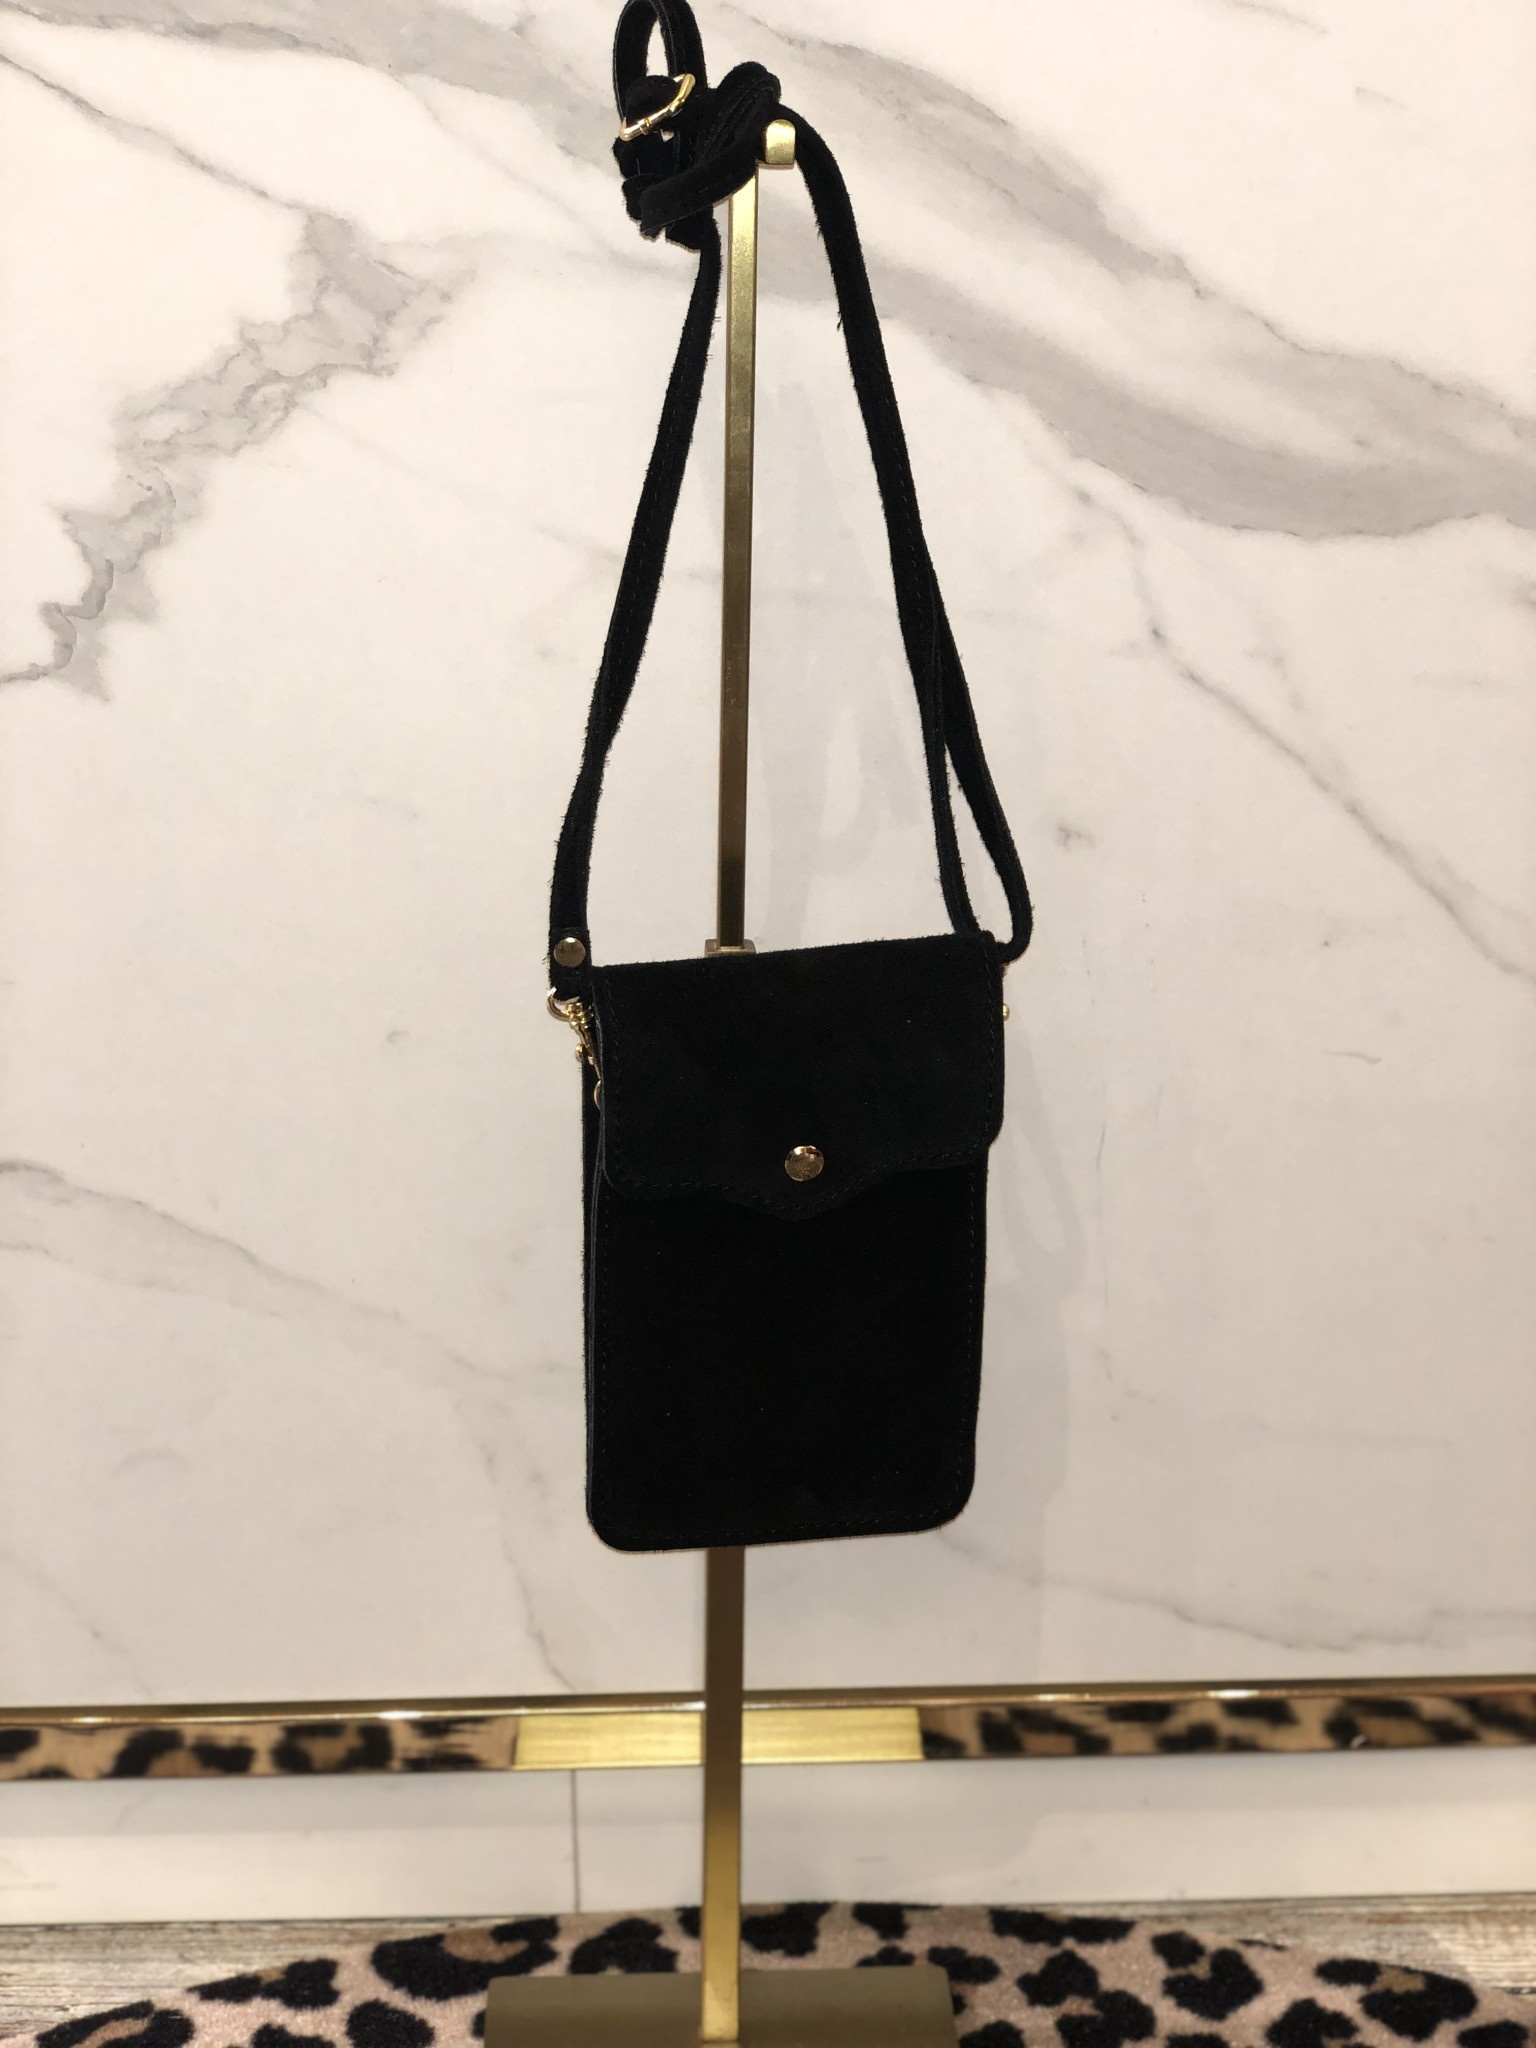 2015 Lipstick Bag Suede Black